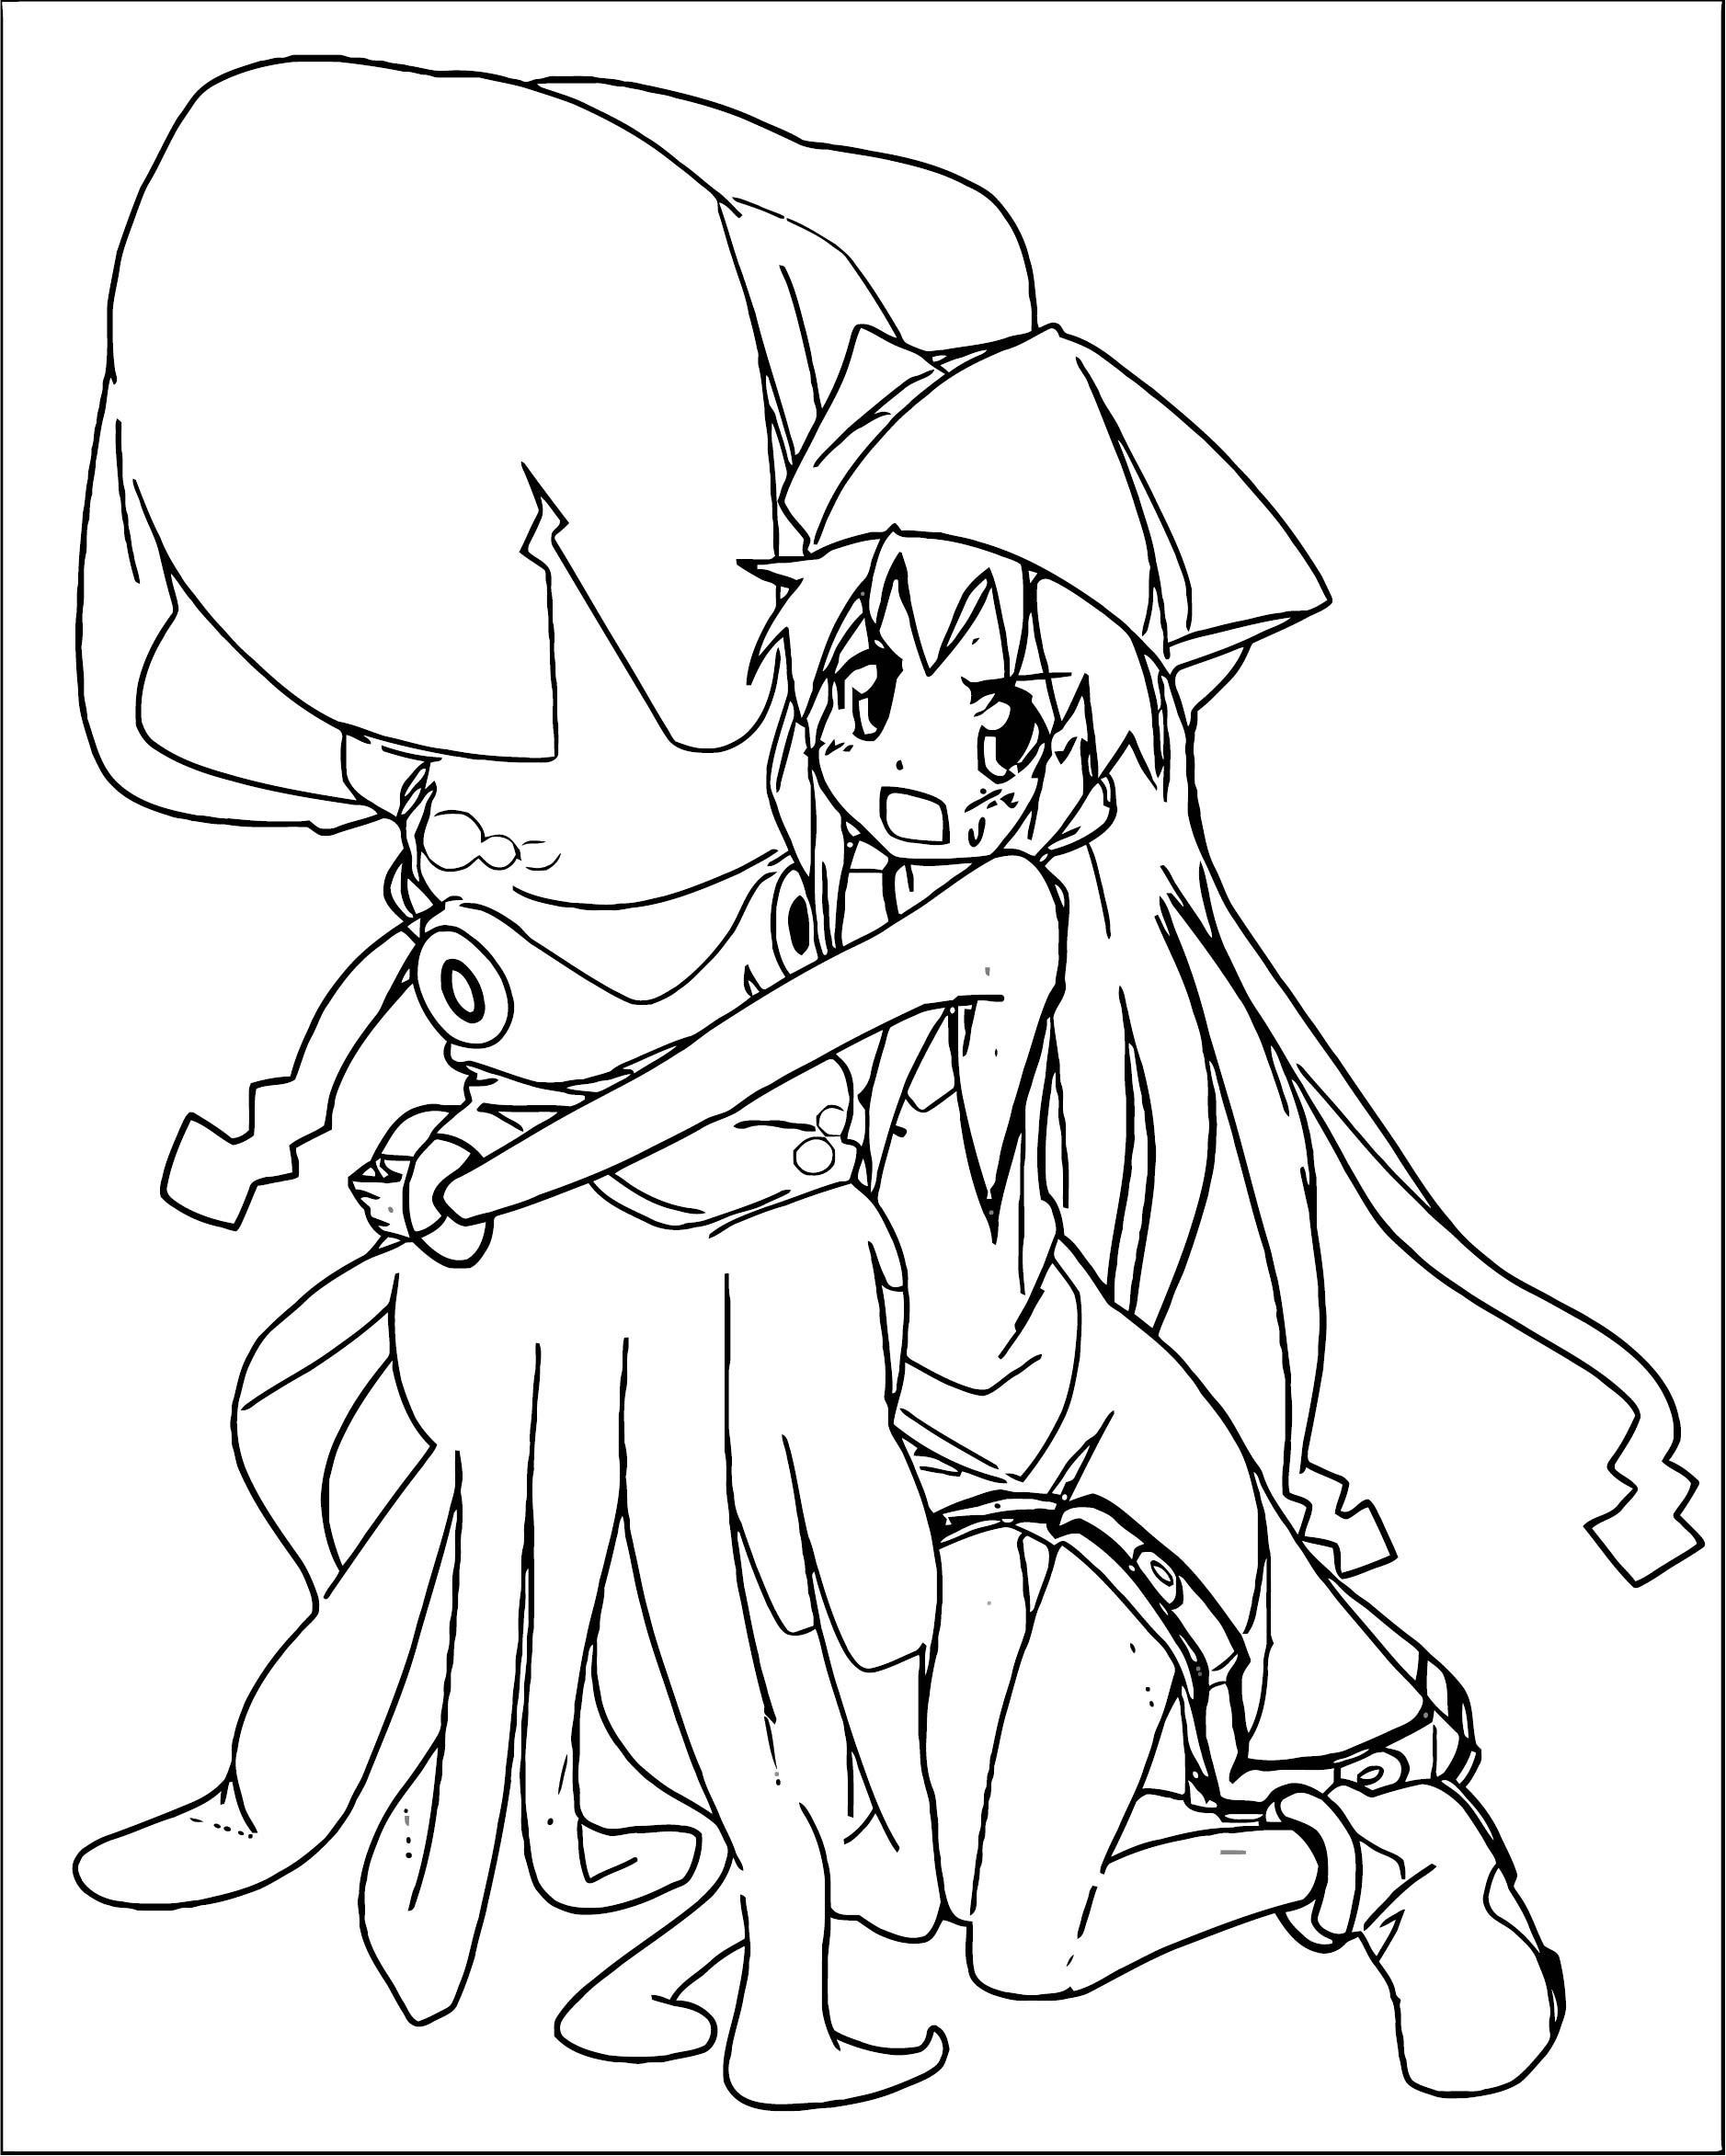 Squid Girl Image Squid Girl Coloring Page